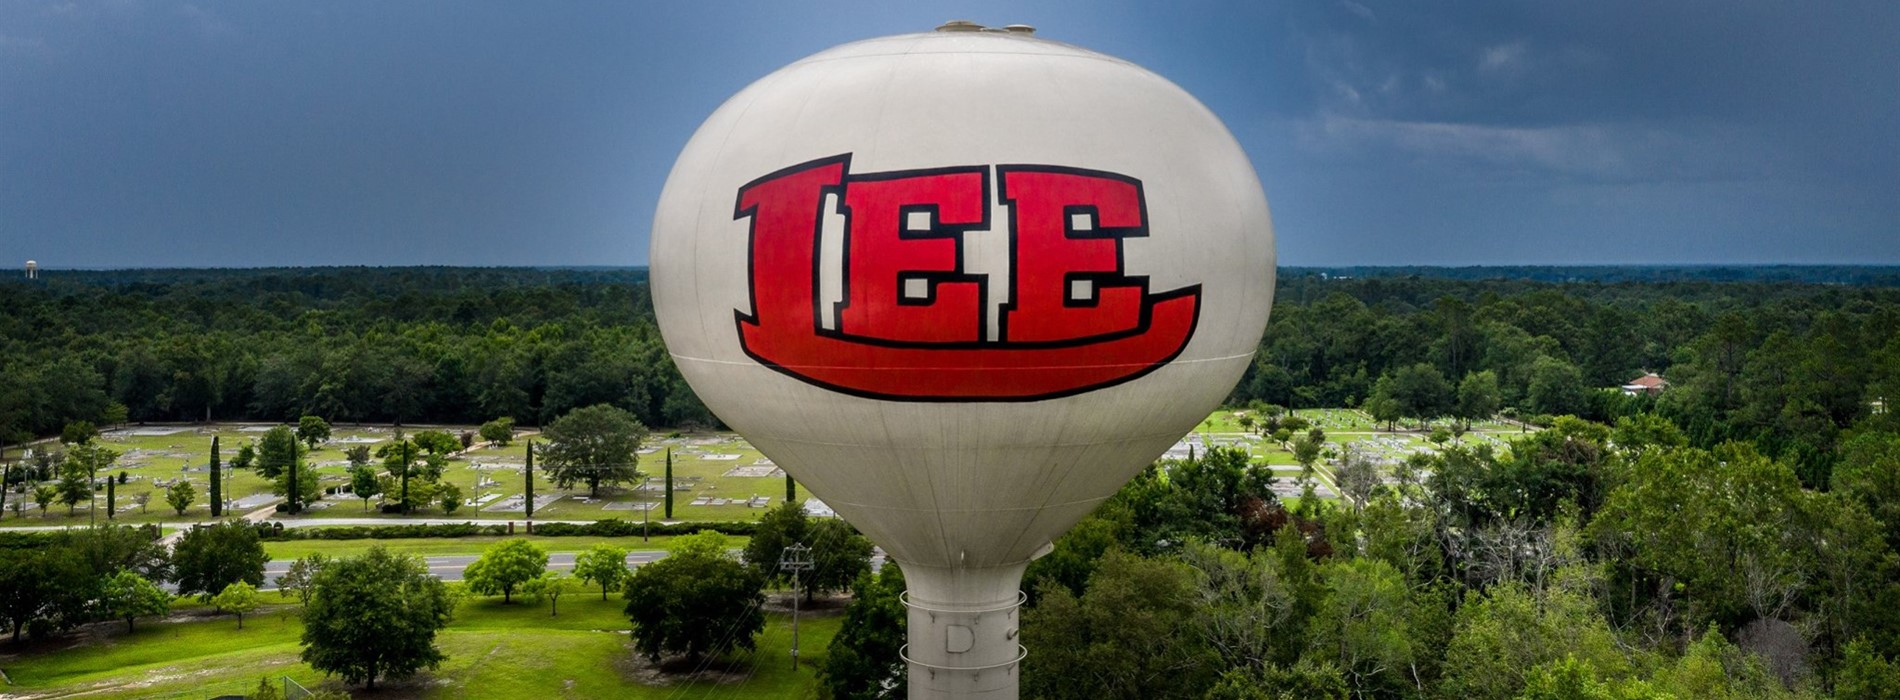 Home - Lee County High School